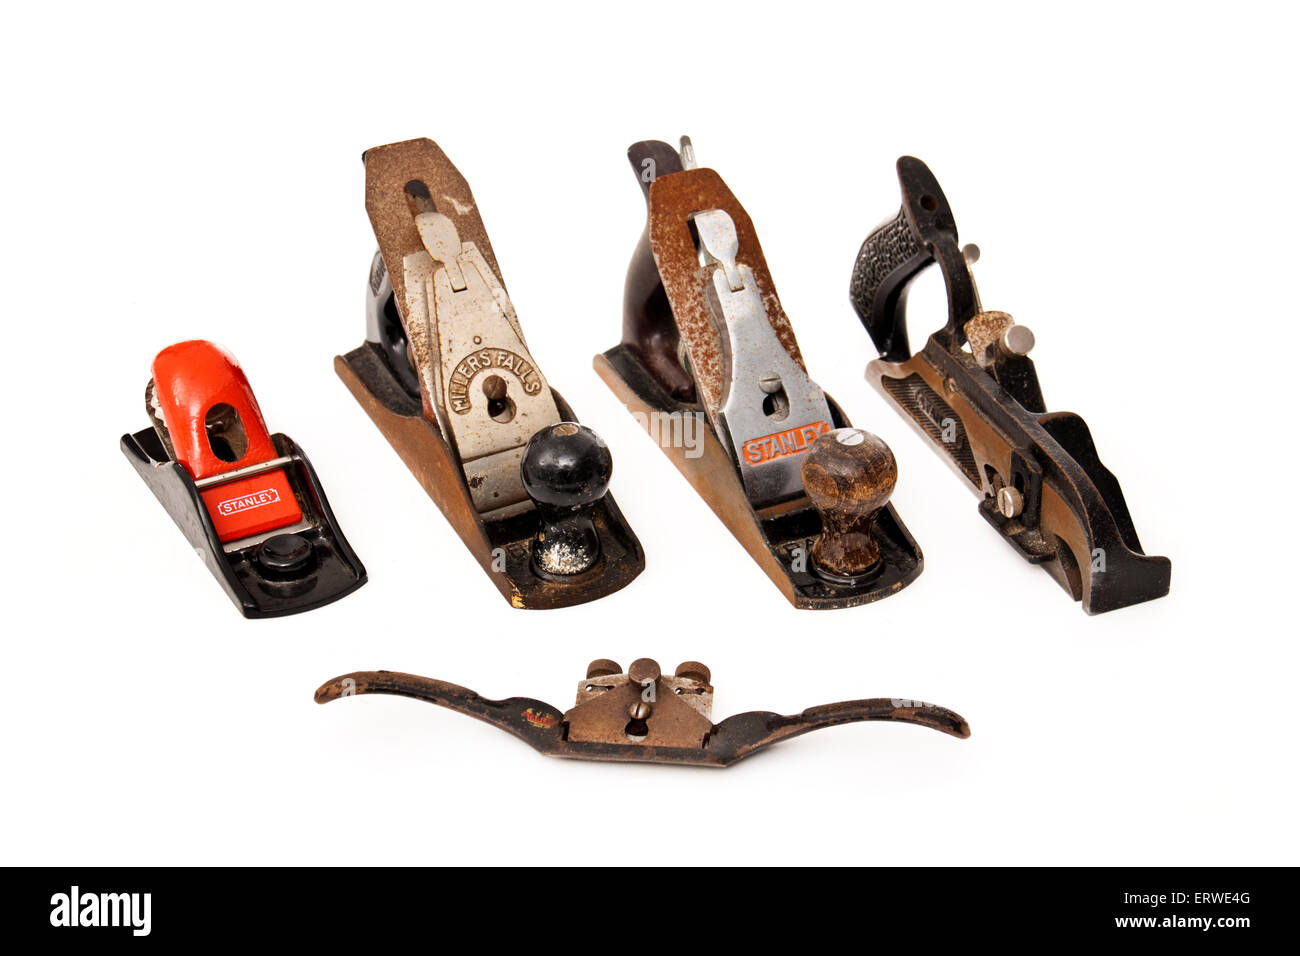 Selection Of Vintage Woodworking Planes By Stanley And Millers Falls